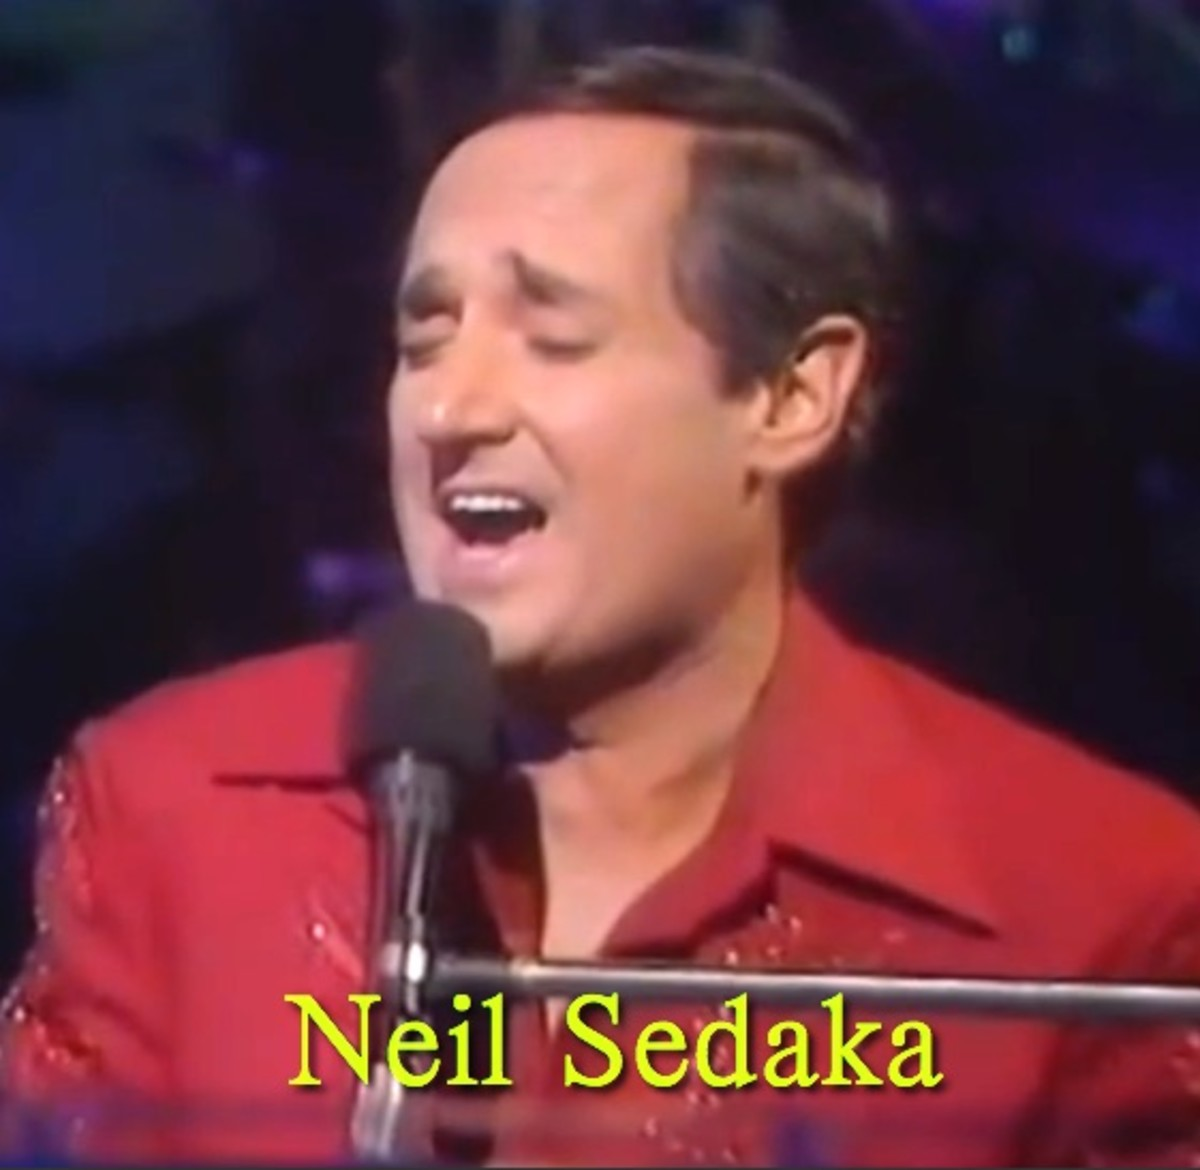 Neil Sedaka and Carole King Dated and Sang for Each Other